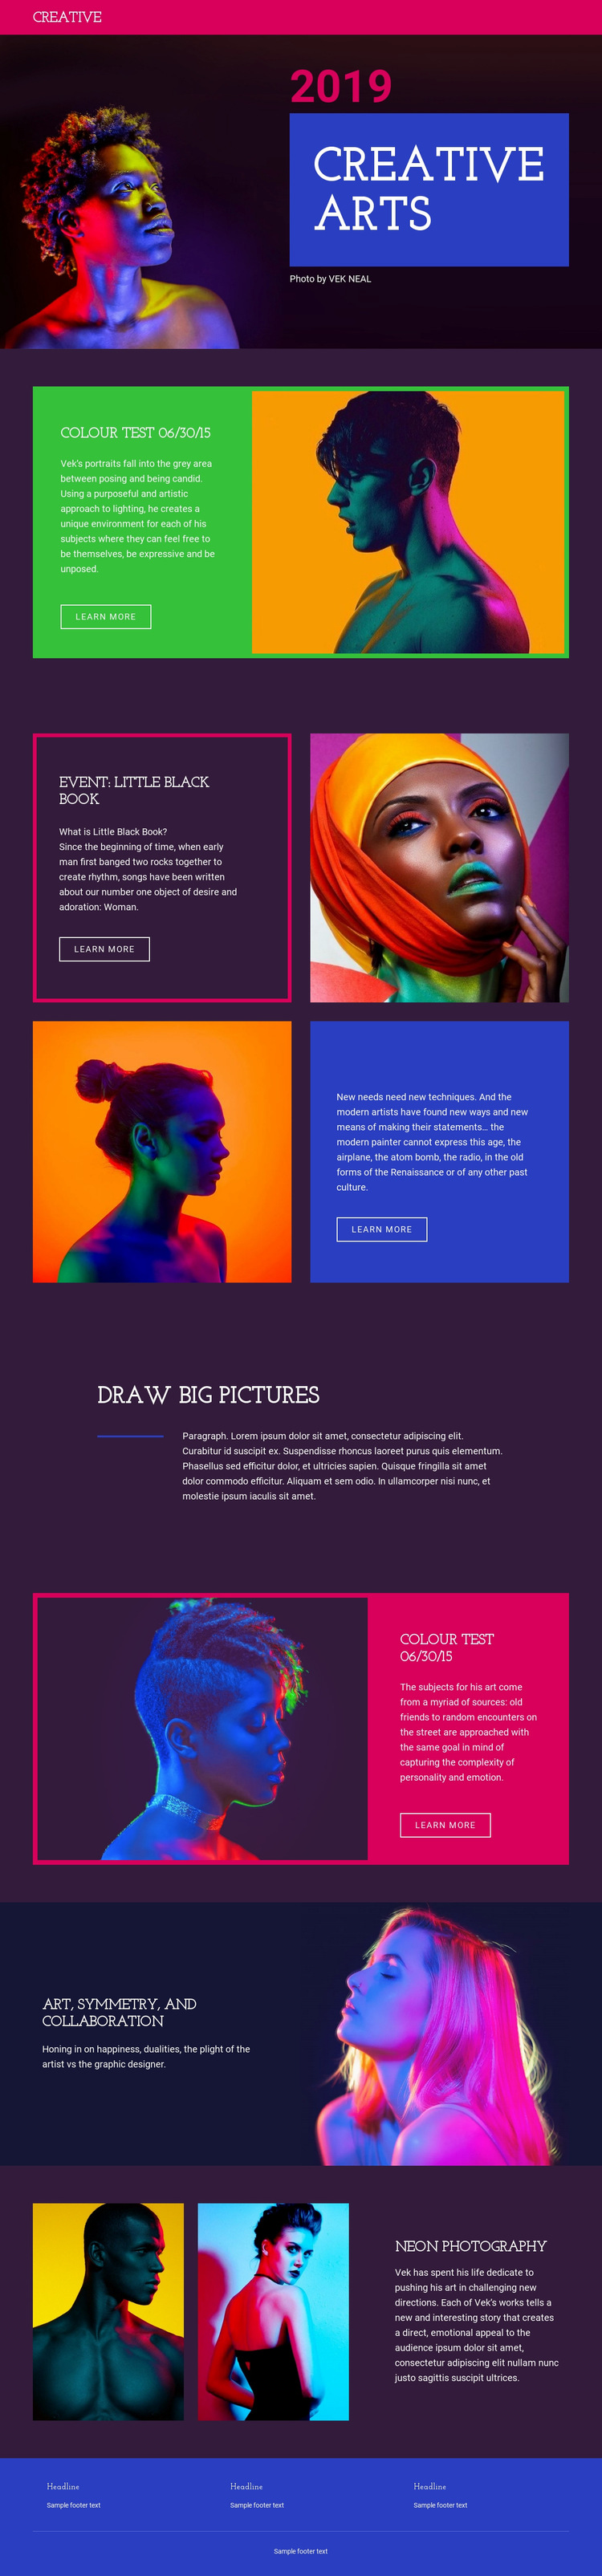 Limited-edition photography Web Page Design